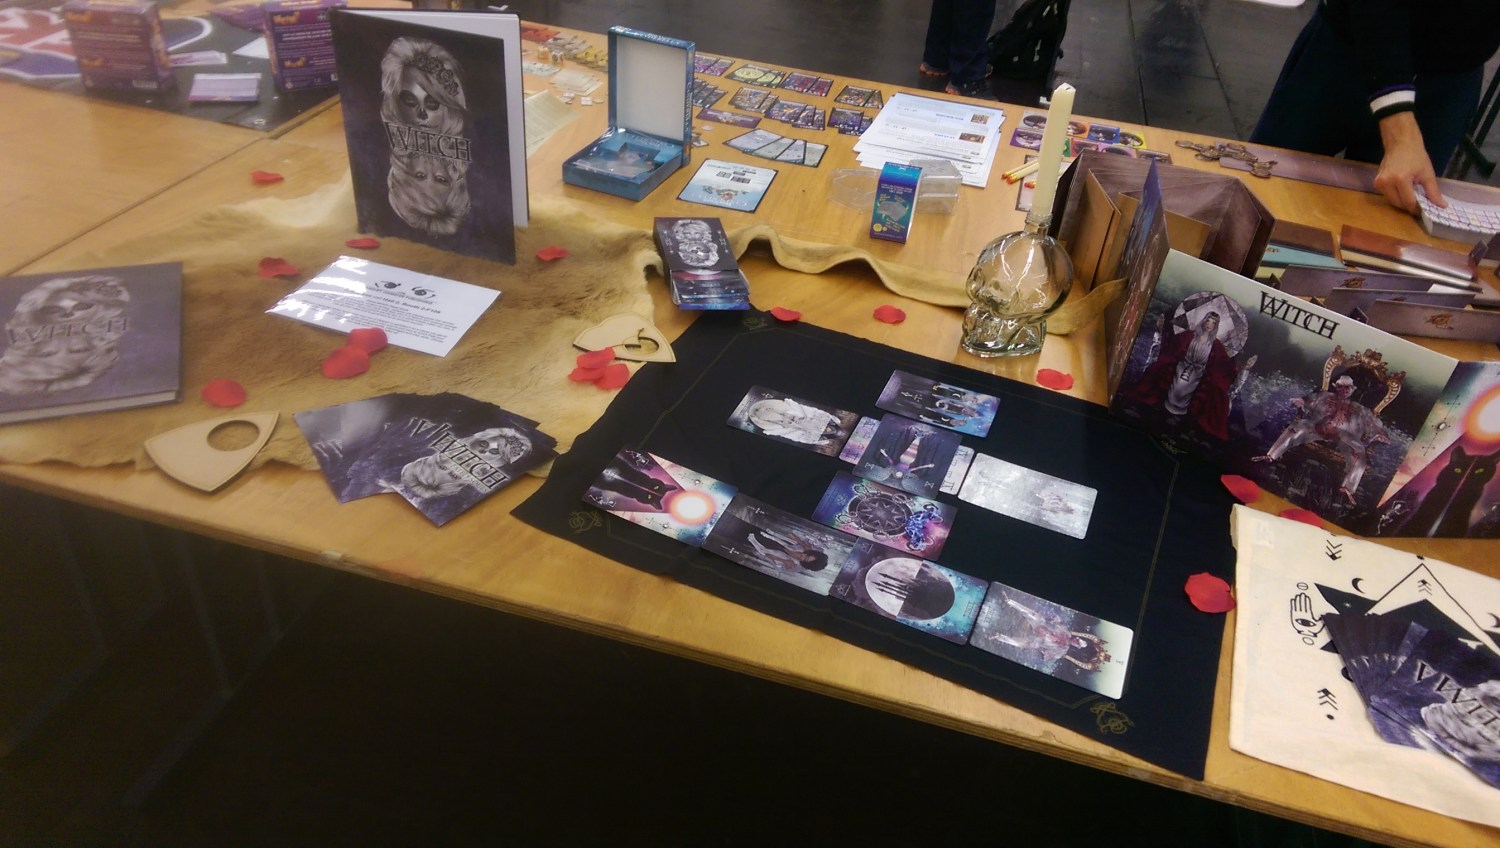 The table was huge, I ended up raiding our booth decoration supplies to make it look nice.